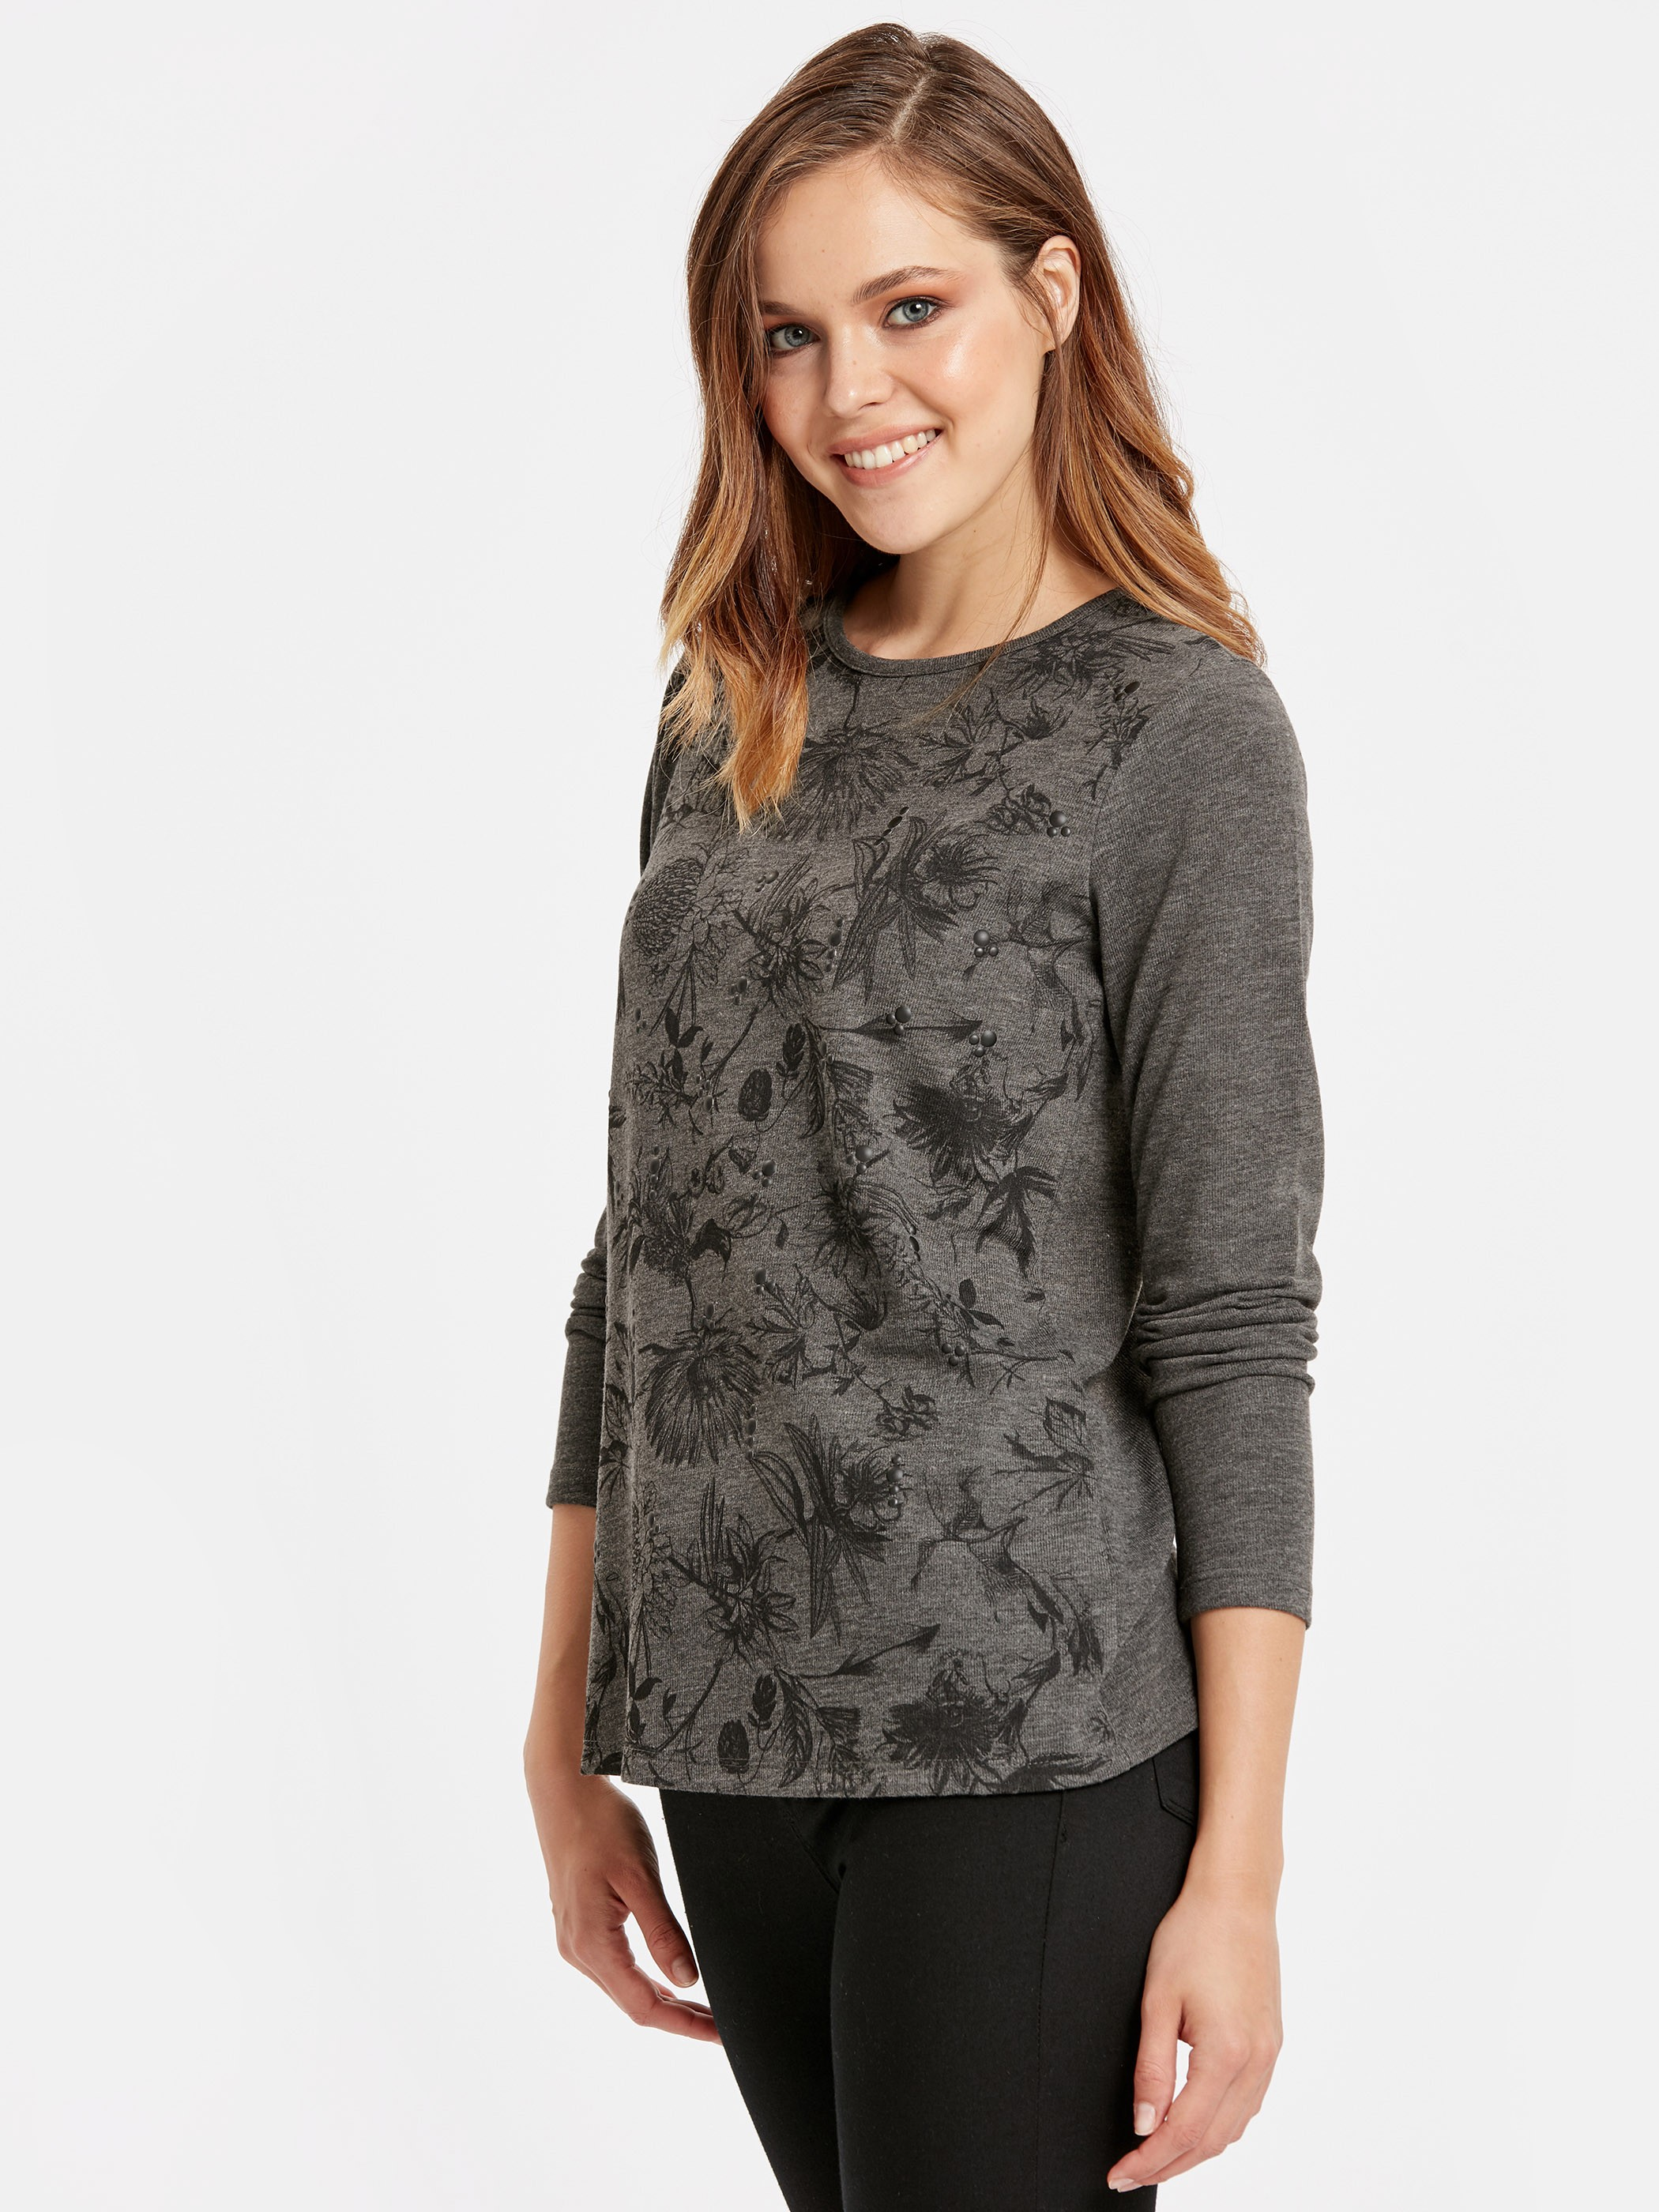 ANTHRACITE - T-Shirt - 8WI828Z8